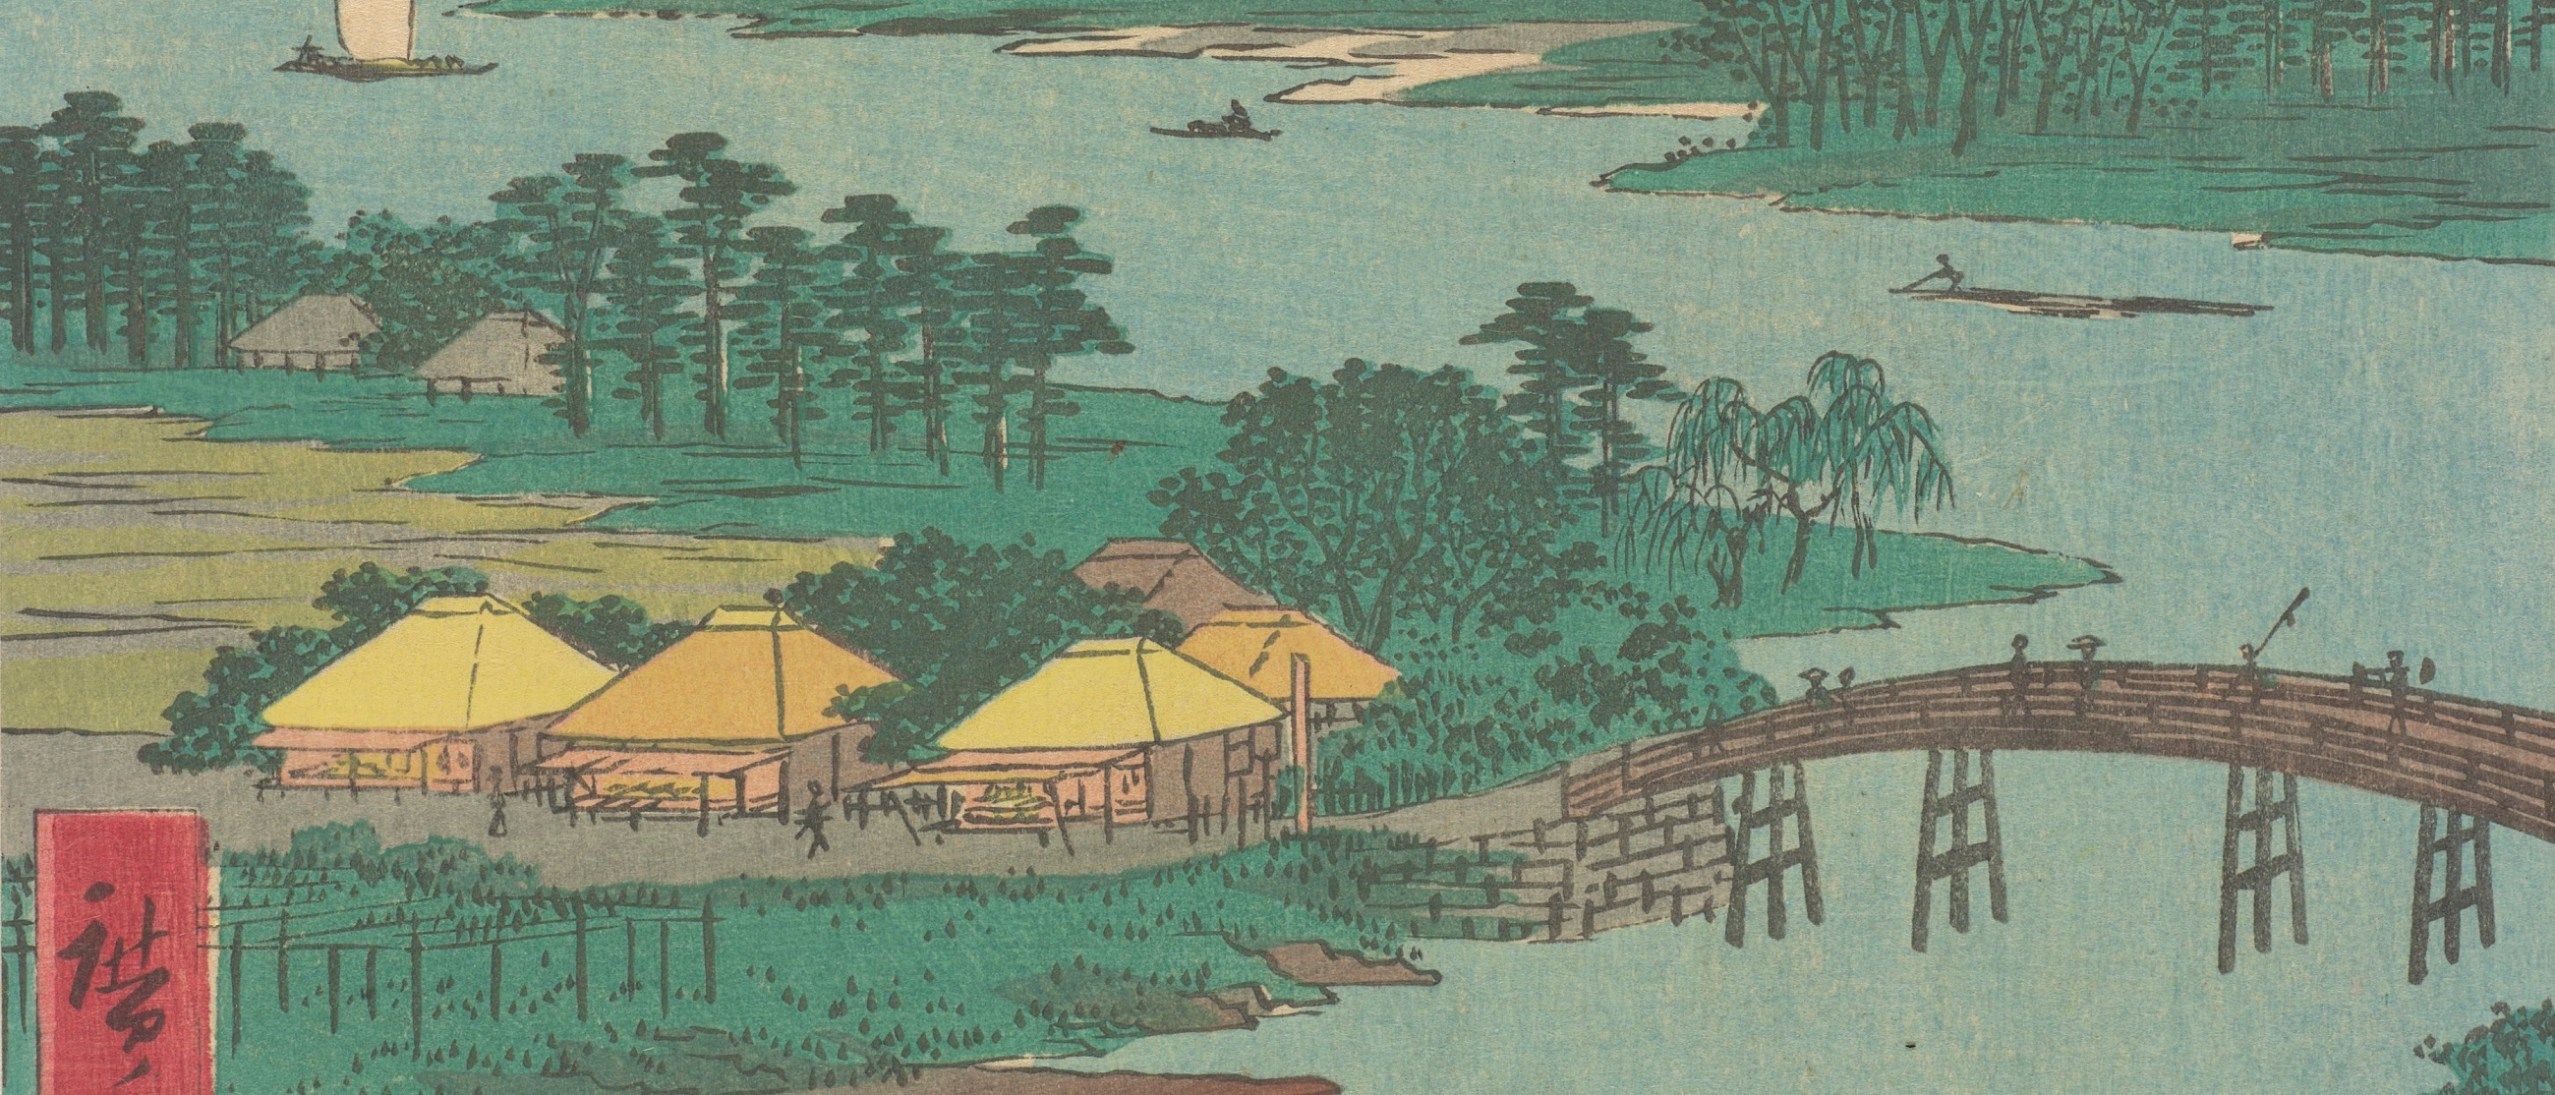 Detail image, Kawasaki, from the series Famous Places of the Fifty-Three Stations; Utagawa Hiroshige (1797–1858); Japan, Edo period, 1855; one of a set of 55 woodblock prints; ink and color on paper; Gift of Victor and Takako Hauge, FSC-GR-705.3.